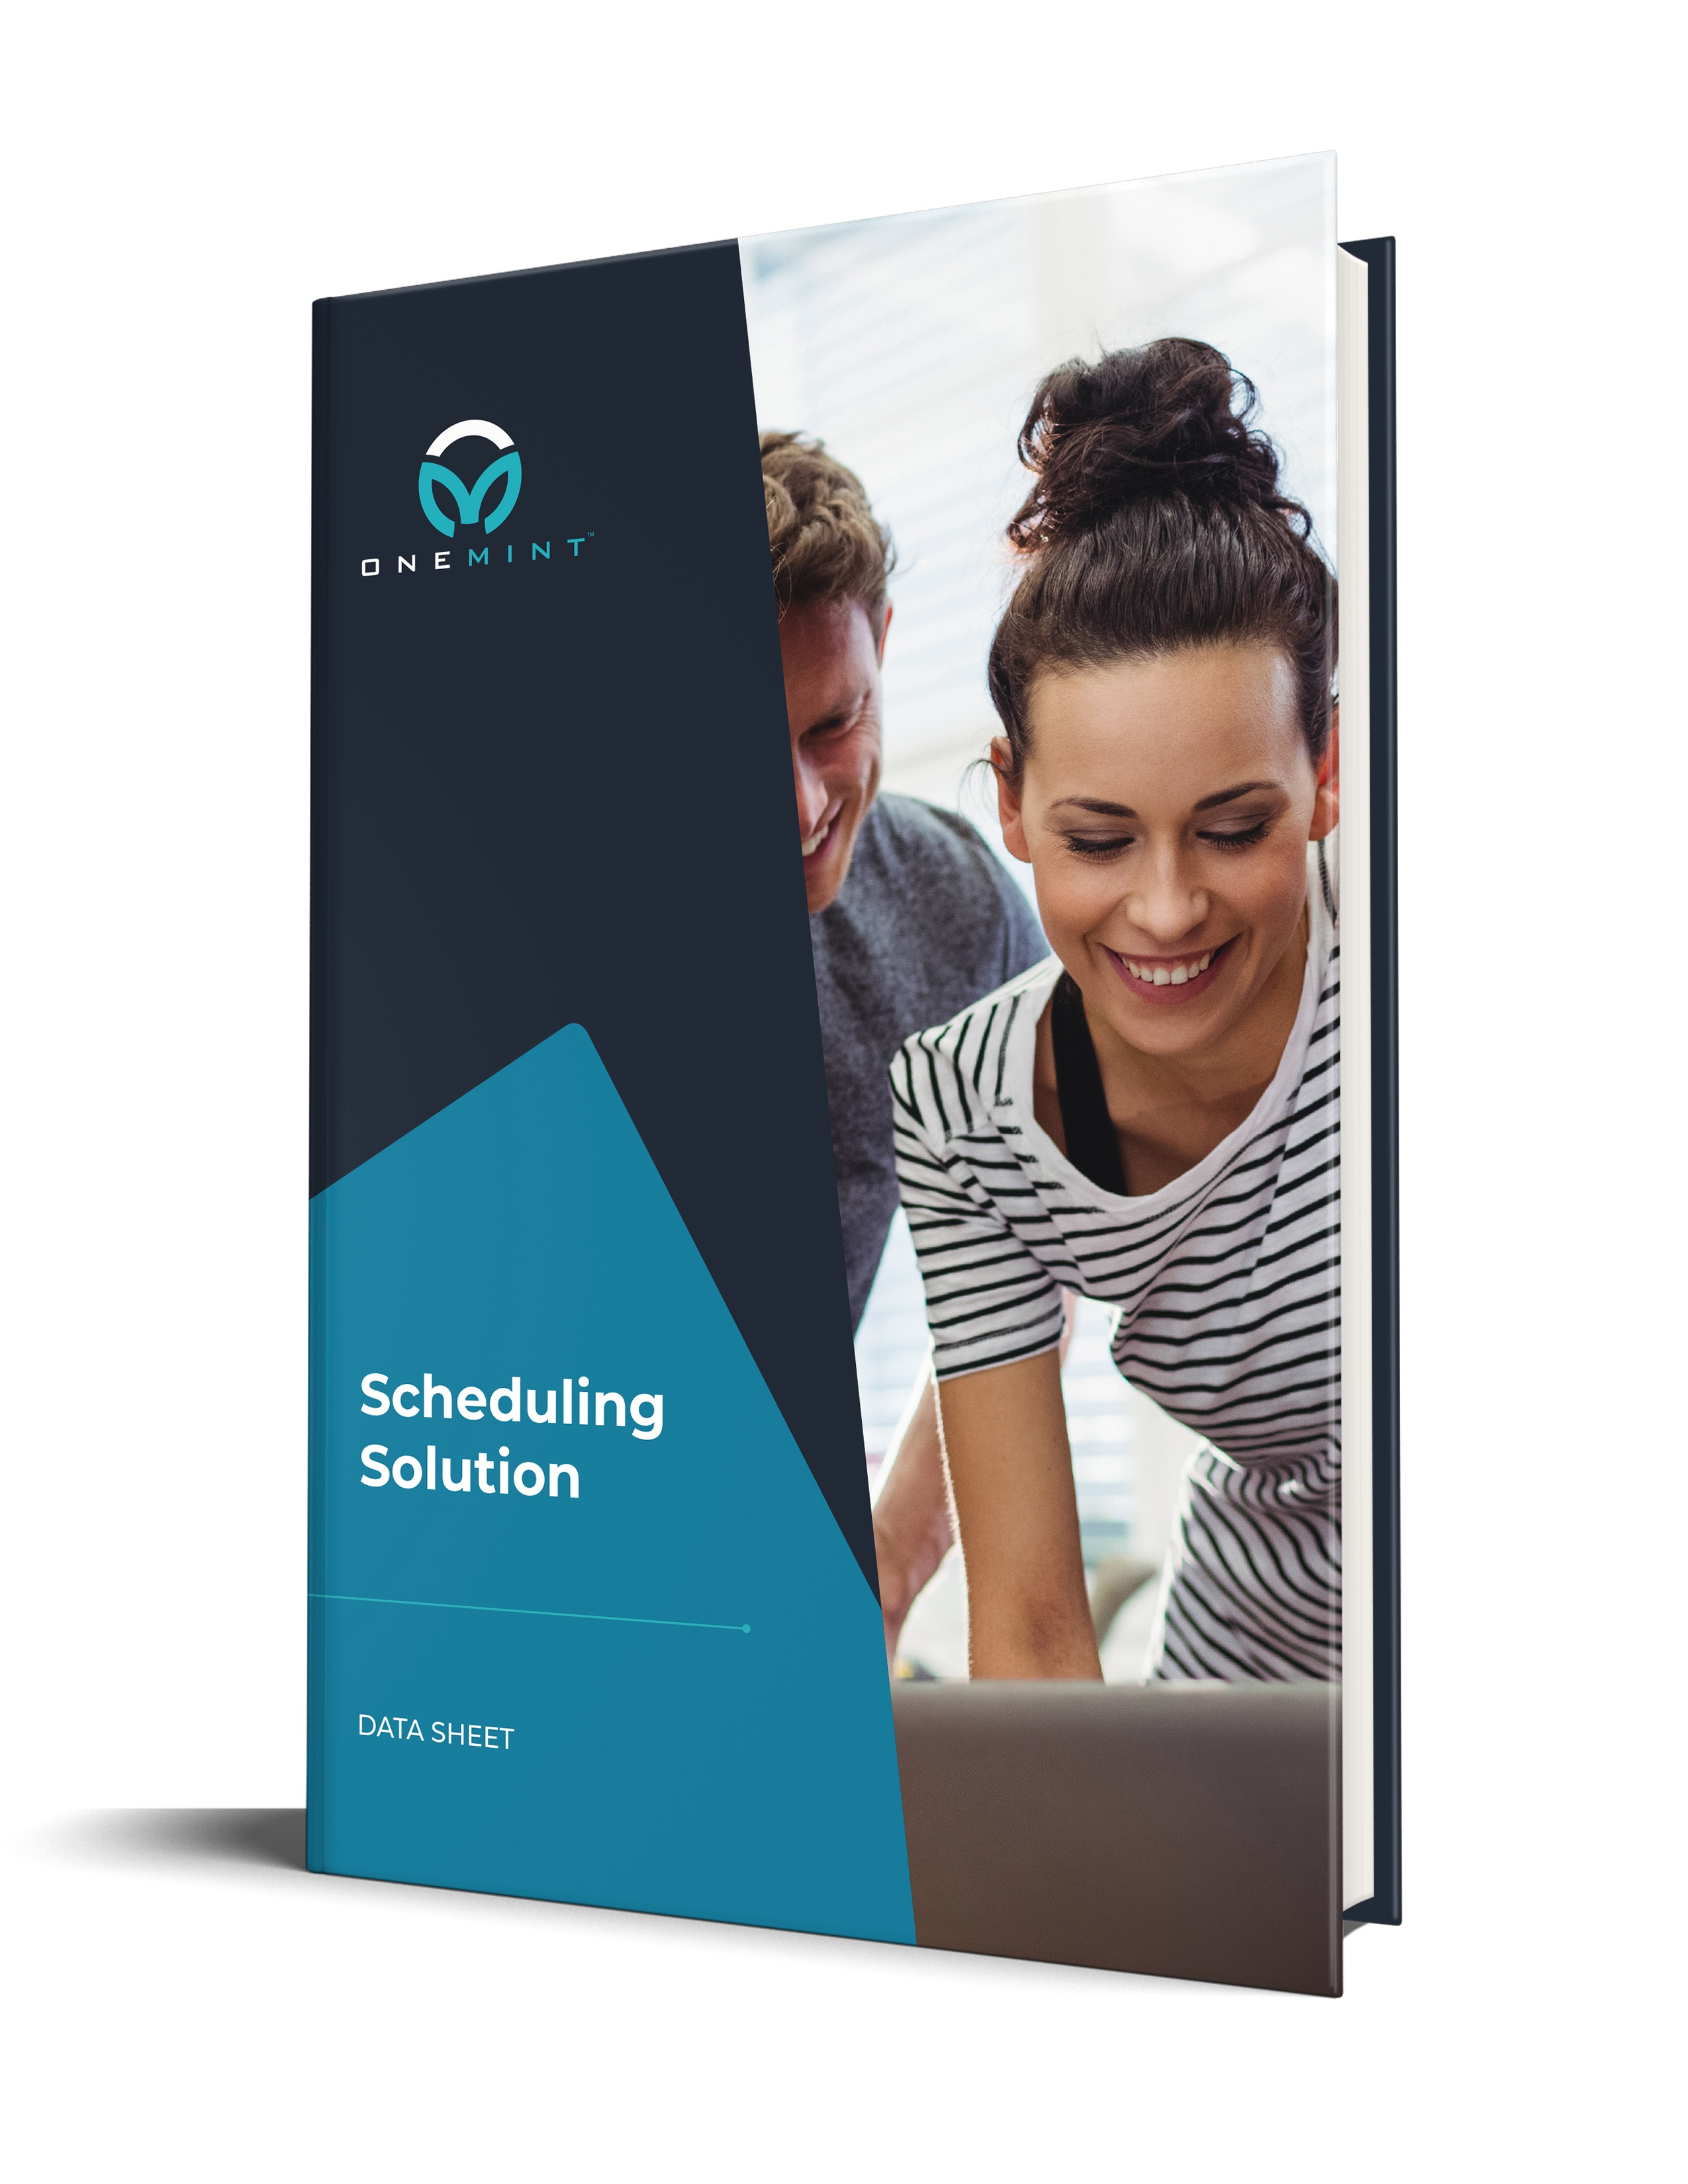 ONEMINT Scheduling Solution